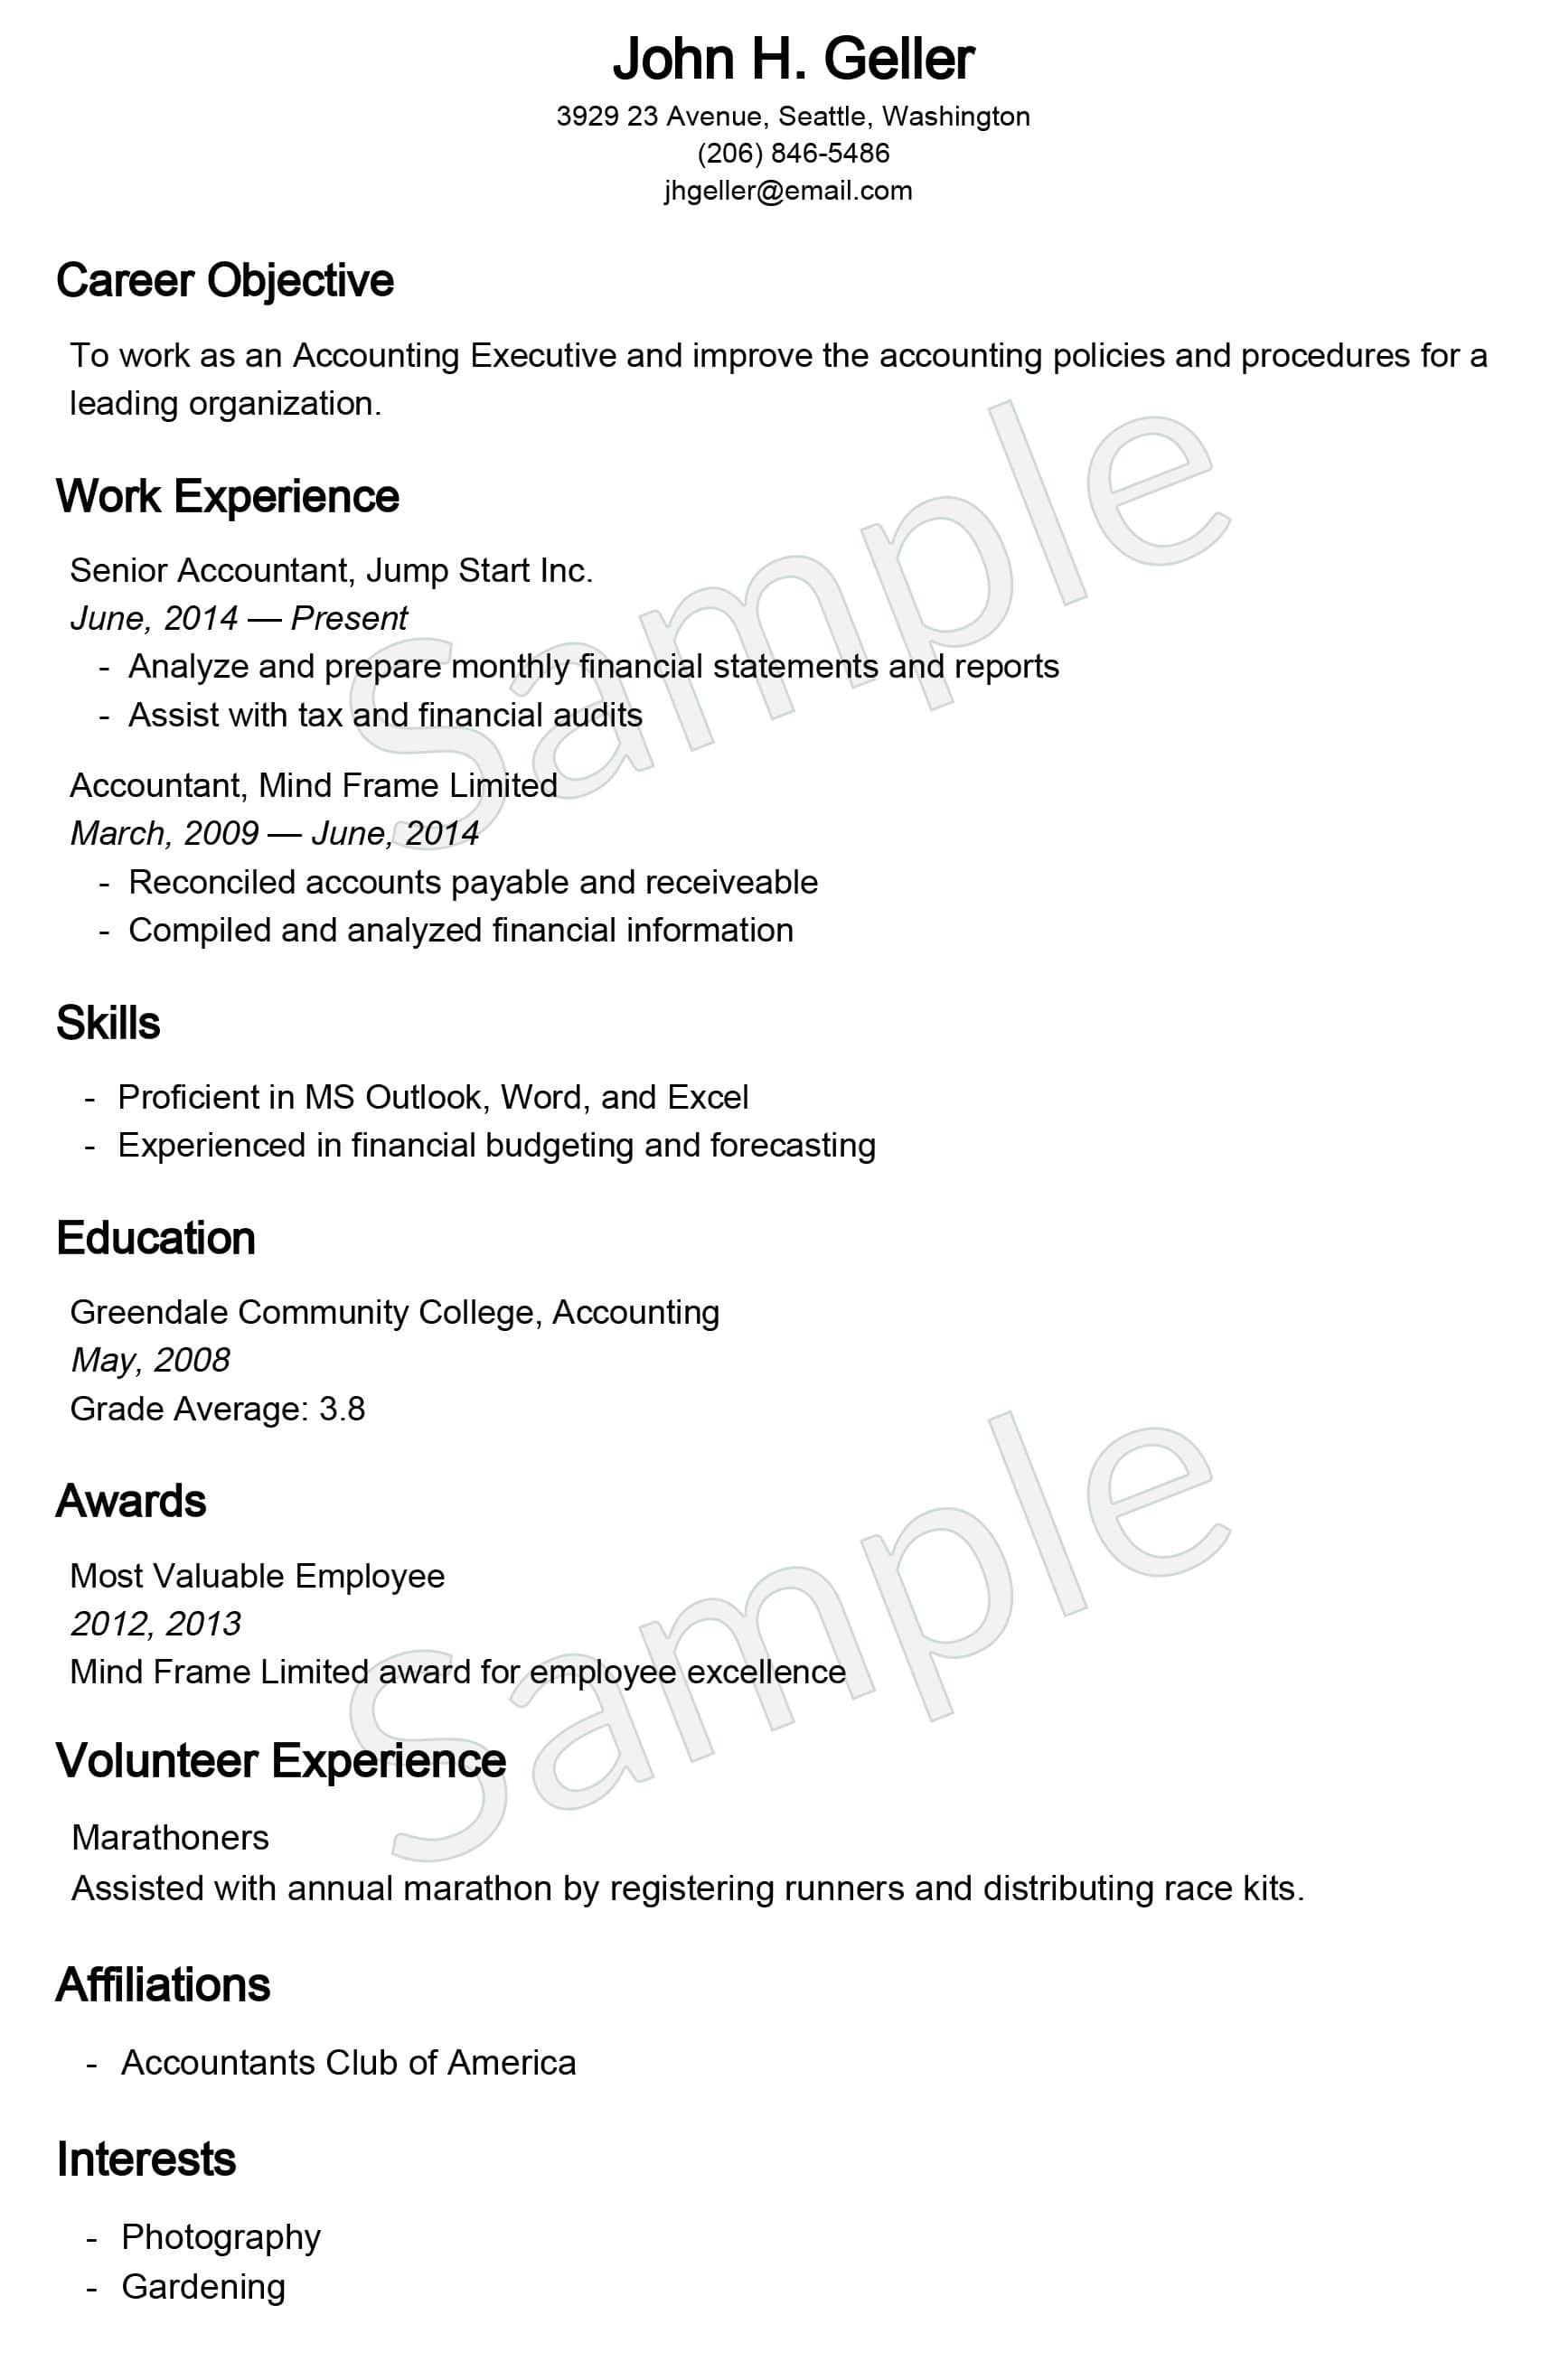 Resume Writing Template Free Resume Builder  Free Resume Template Us  Lawdepot  Dibujos